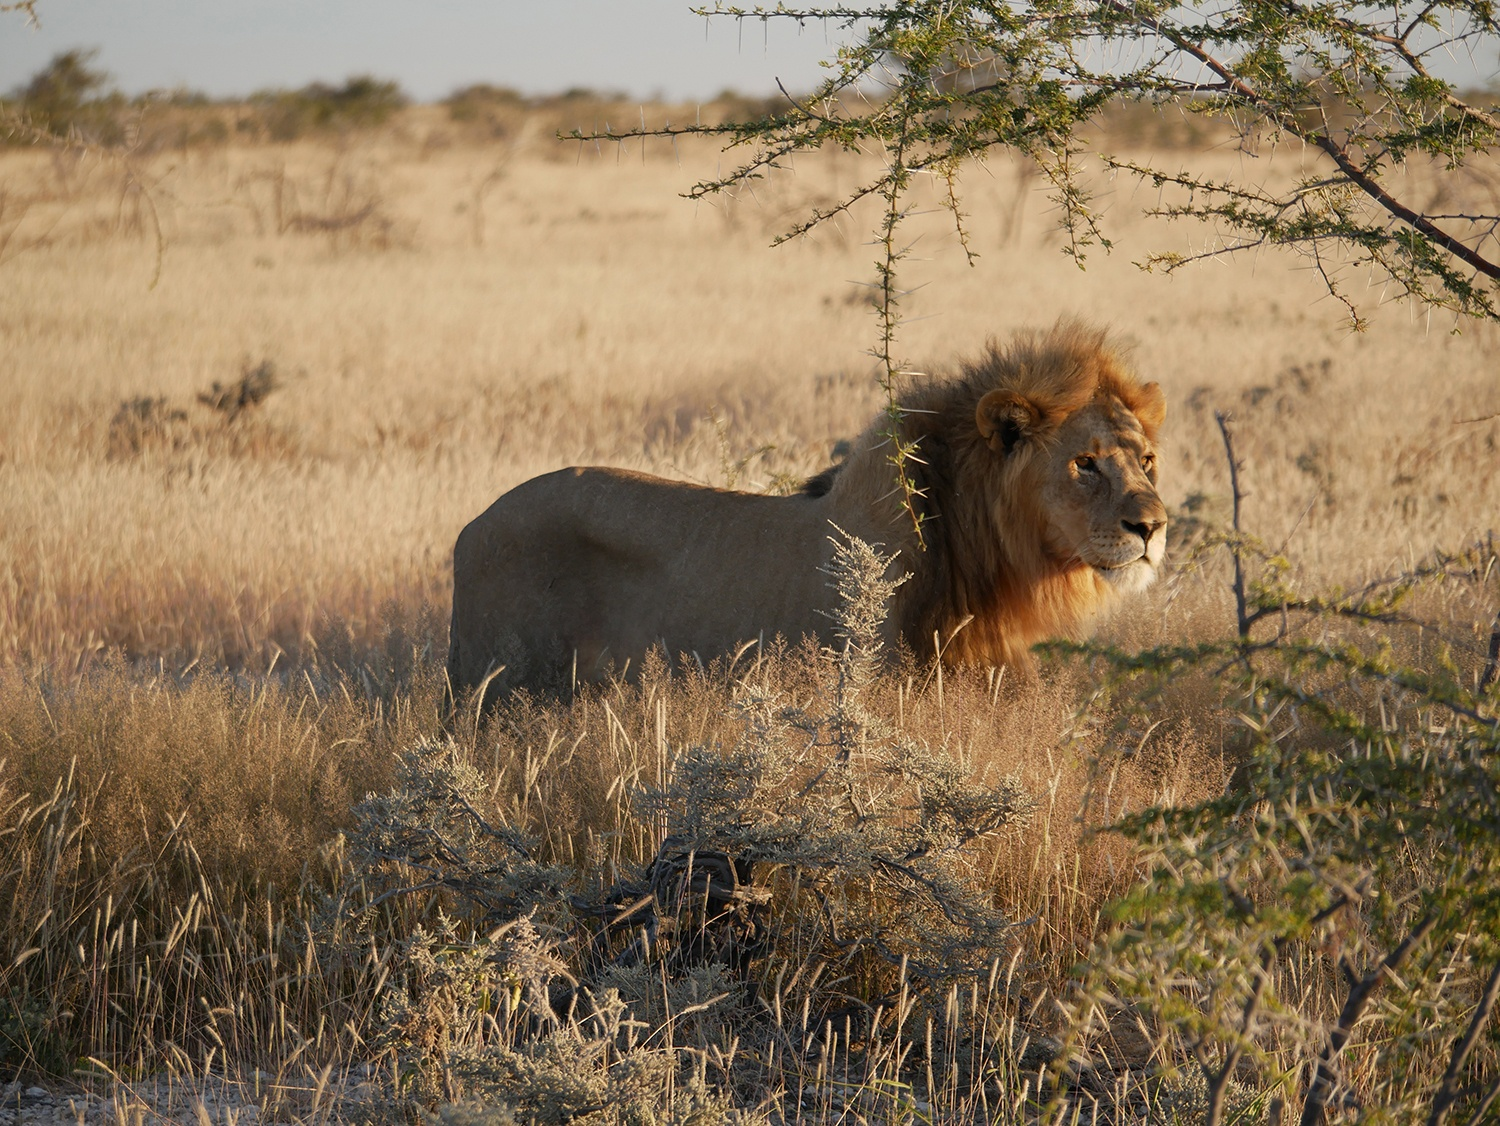 … and lions